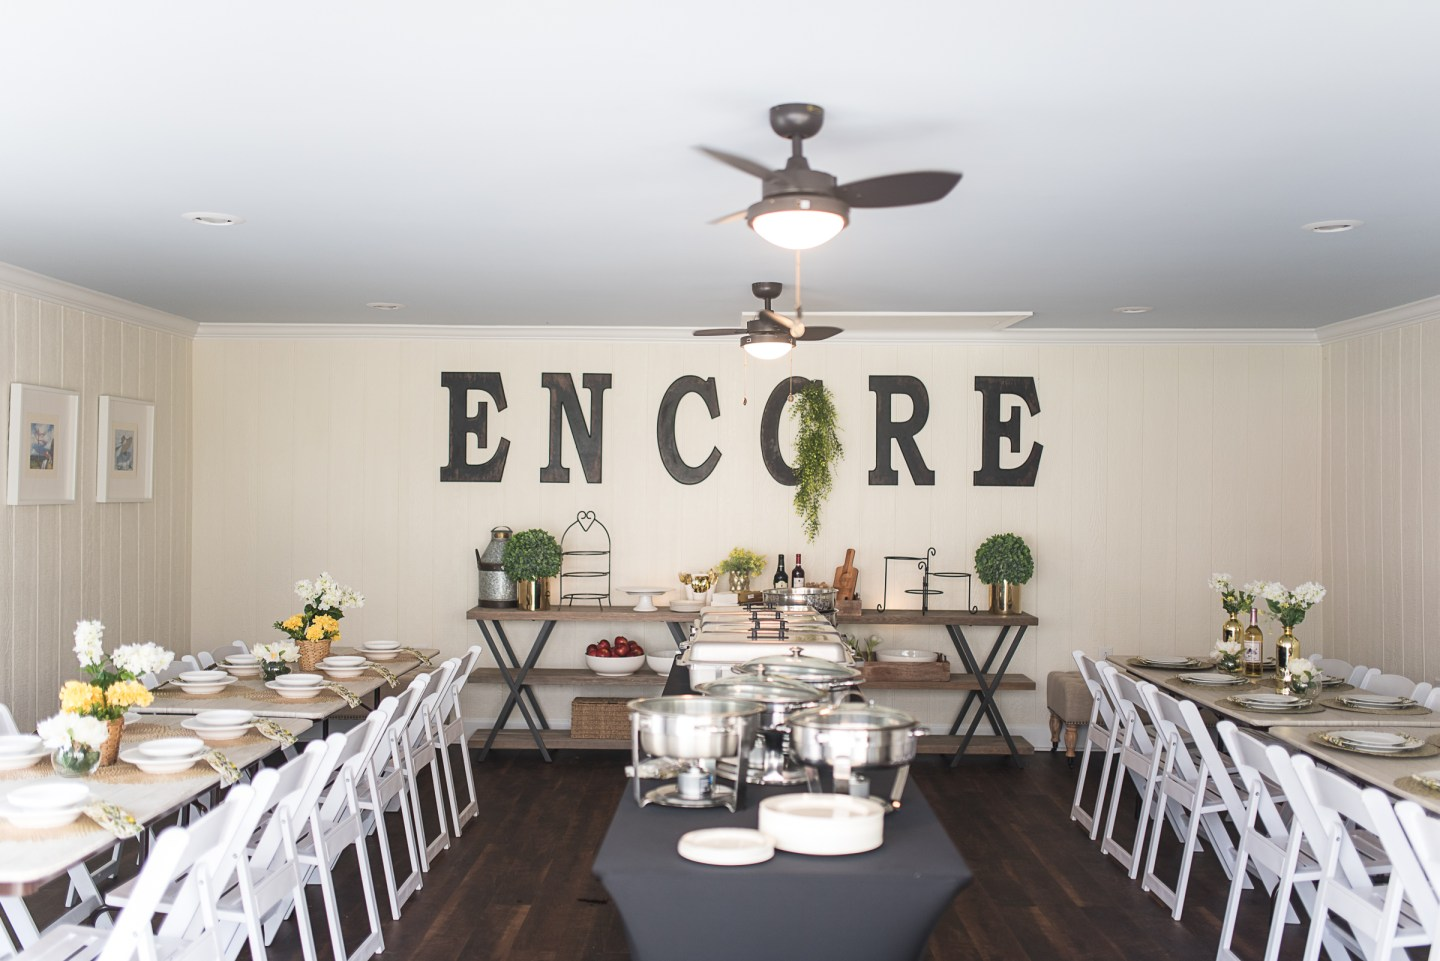 The-Encore-5-of-88-1440x961 How to Host a Summer Dinner Party - The Encore Edition